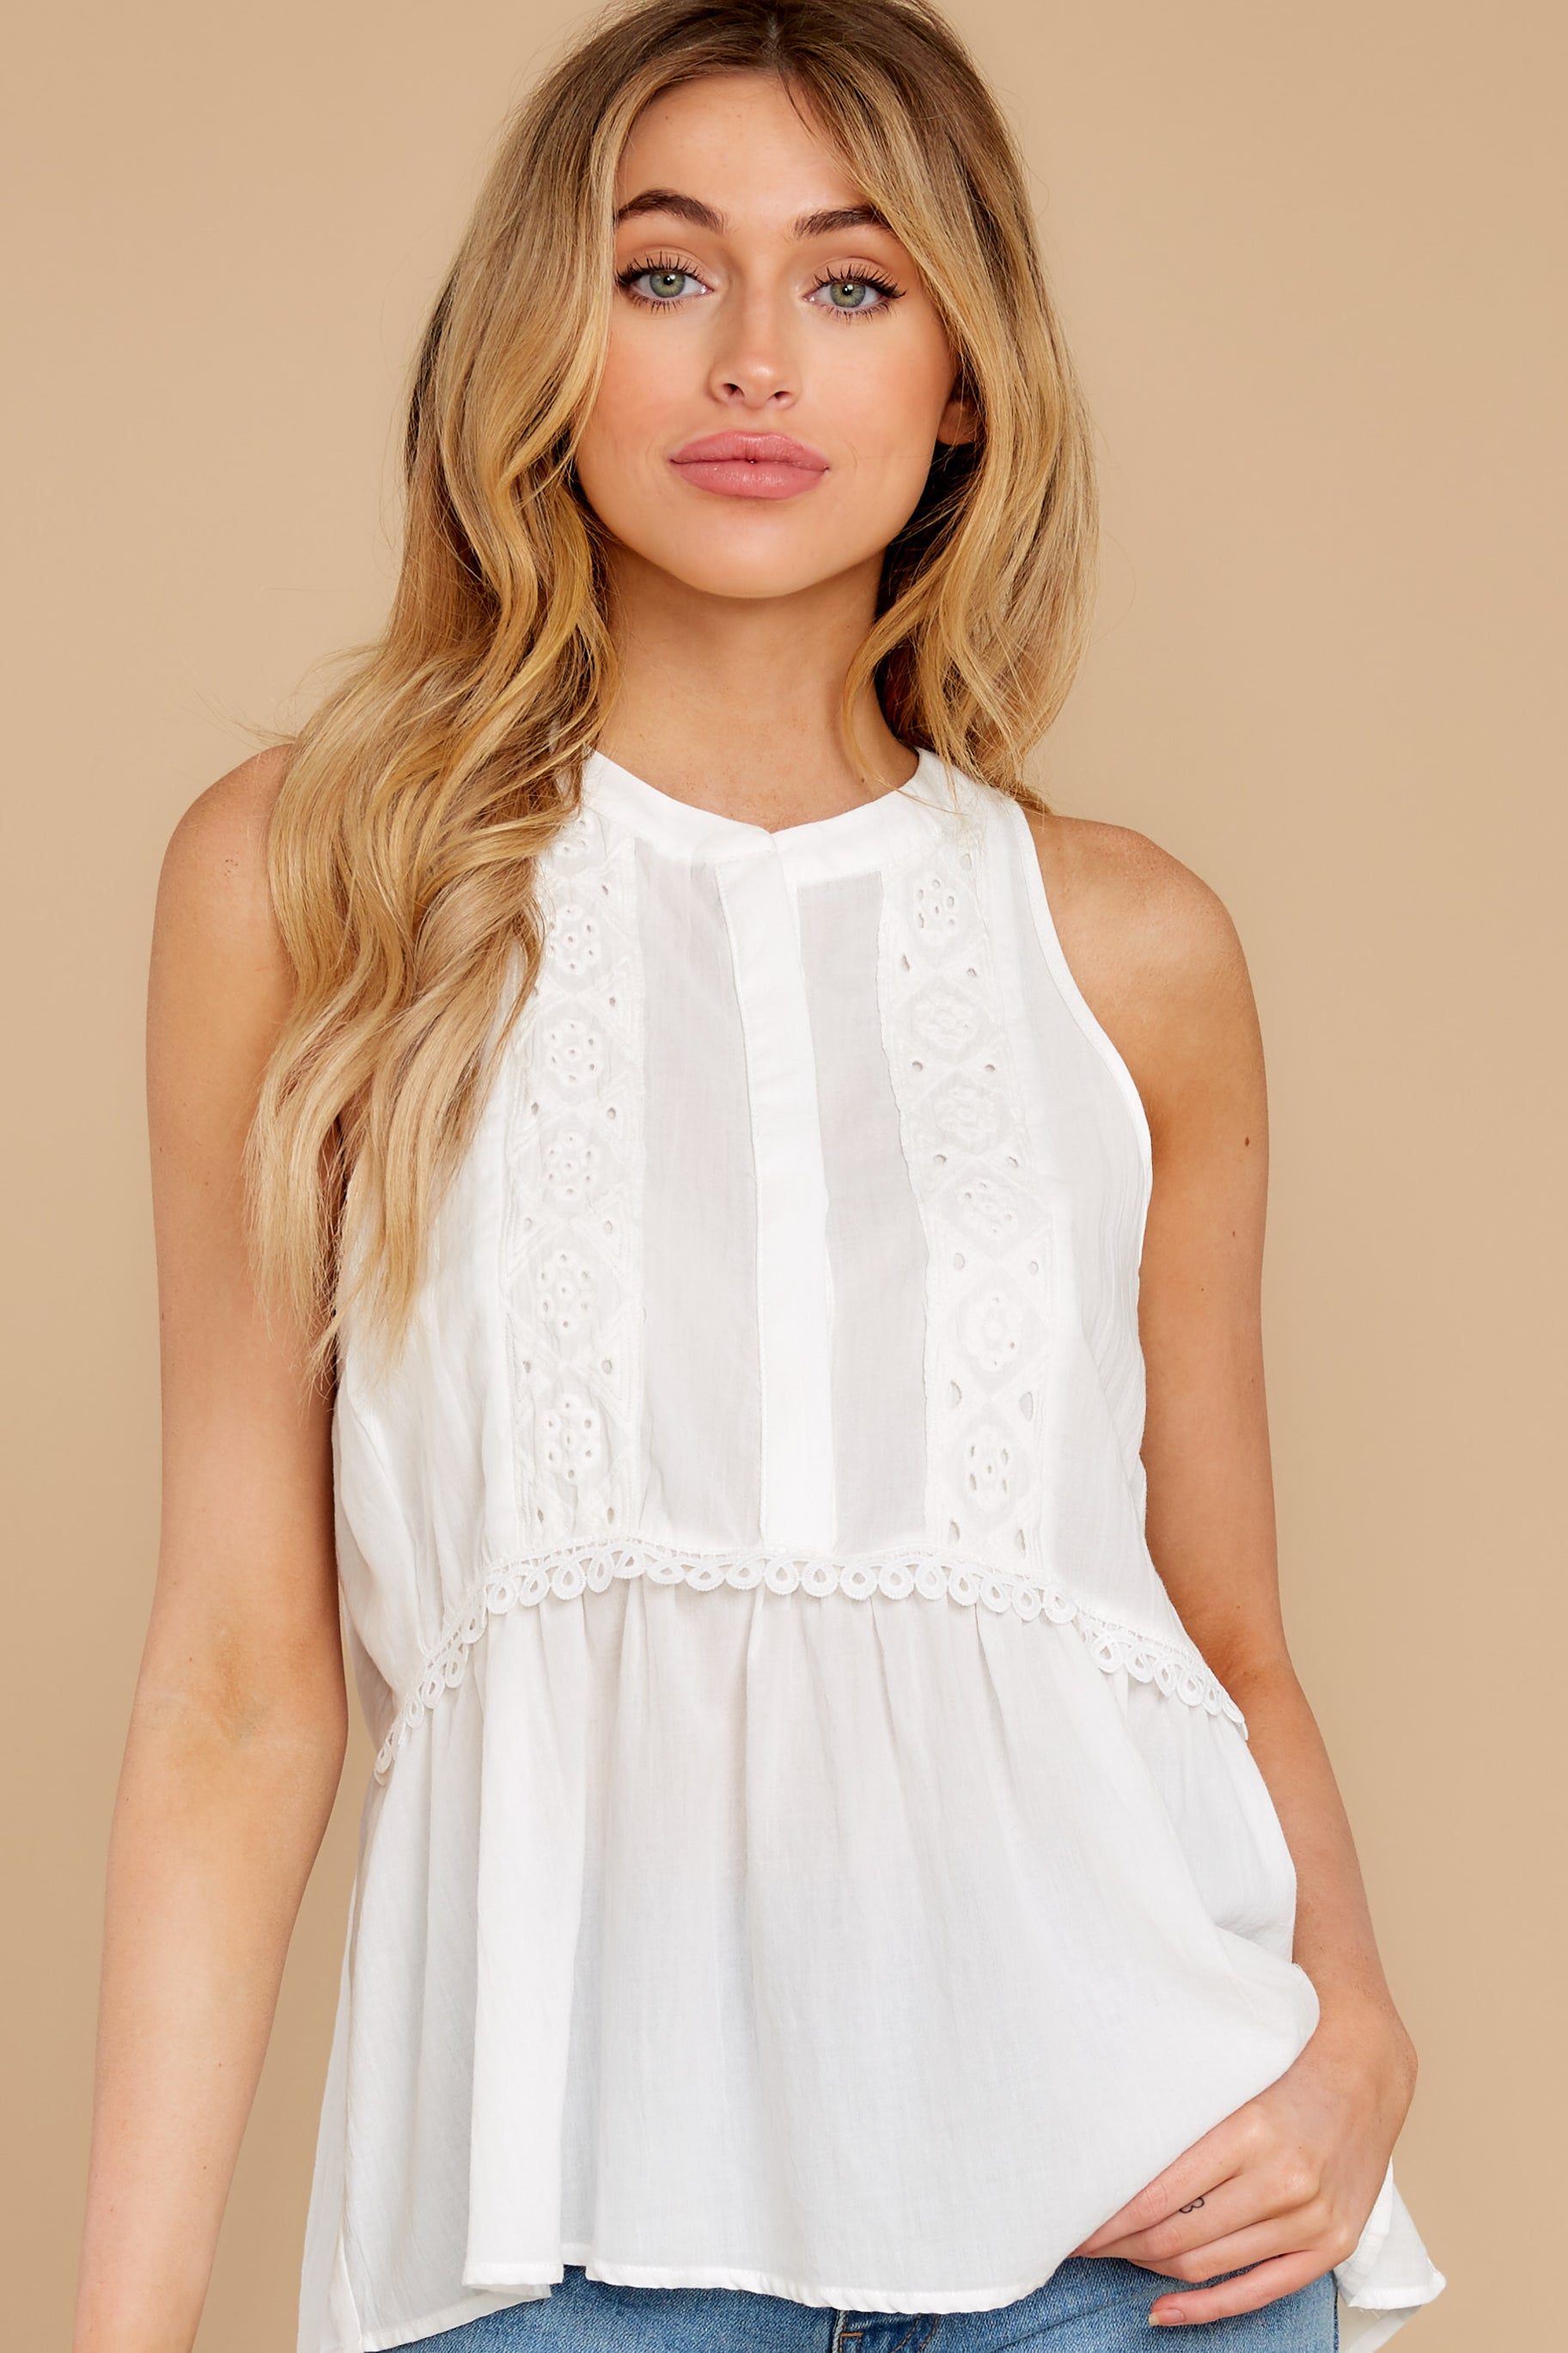 1 Angelic Whispers White Lace Top at reddress.com